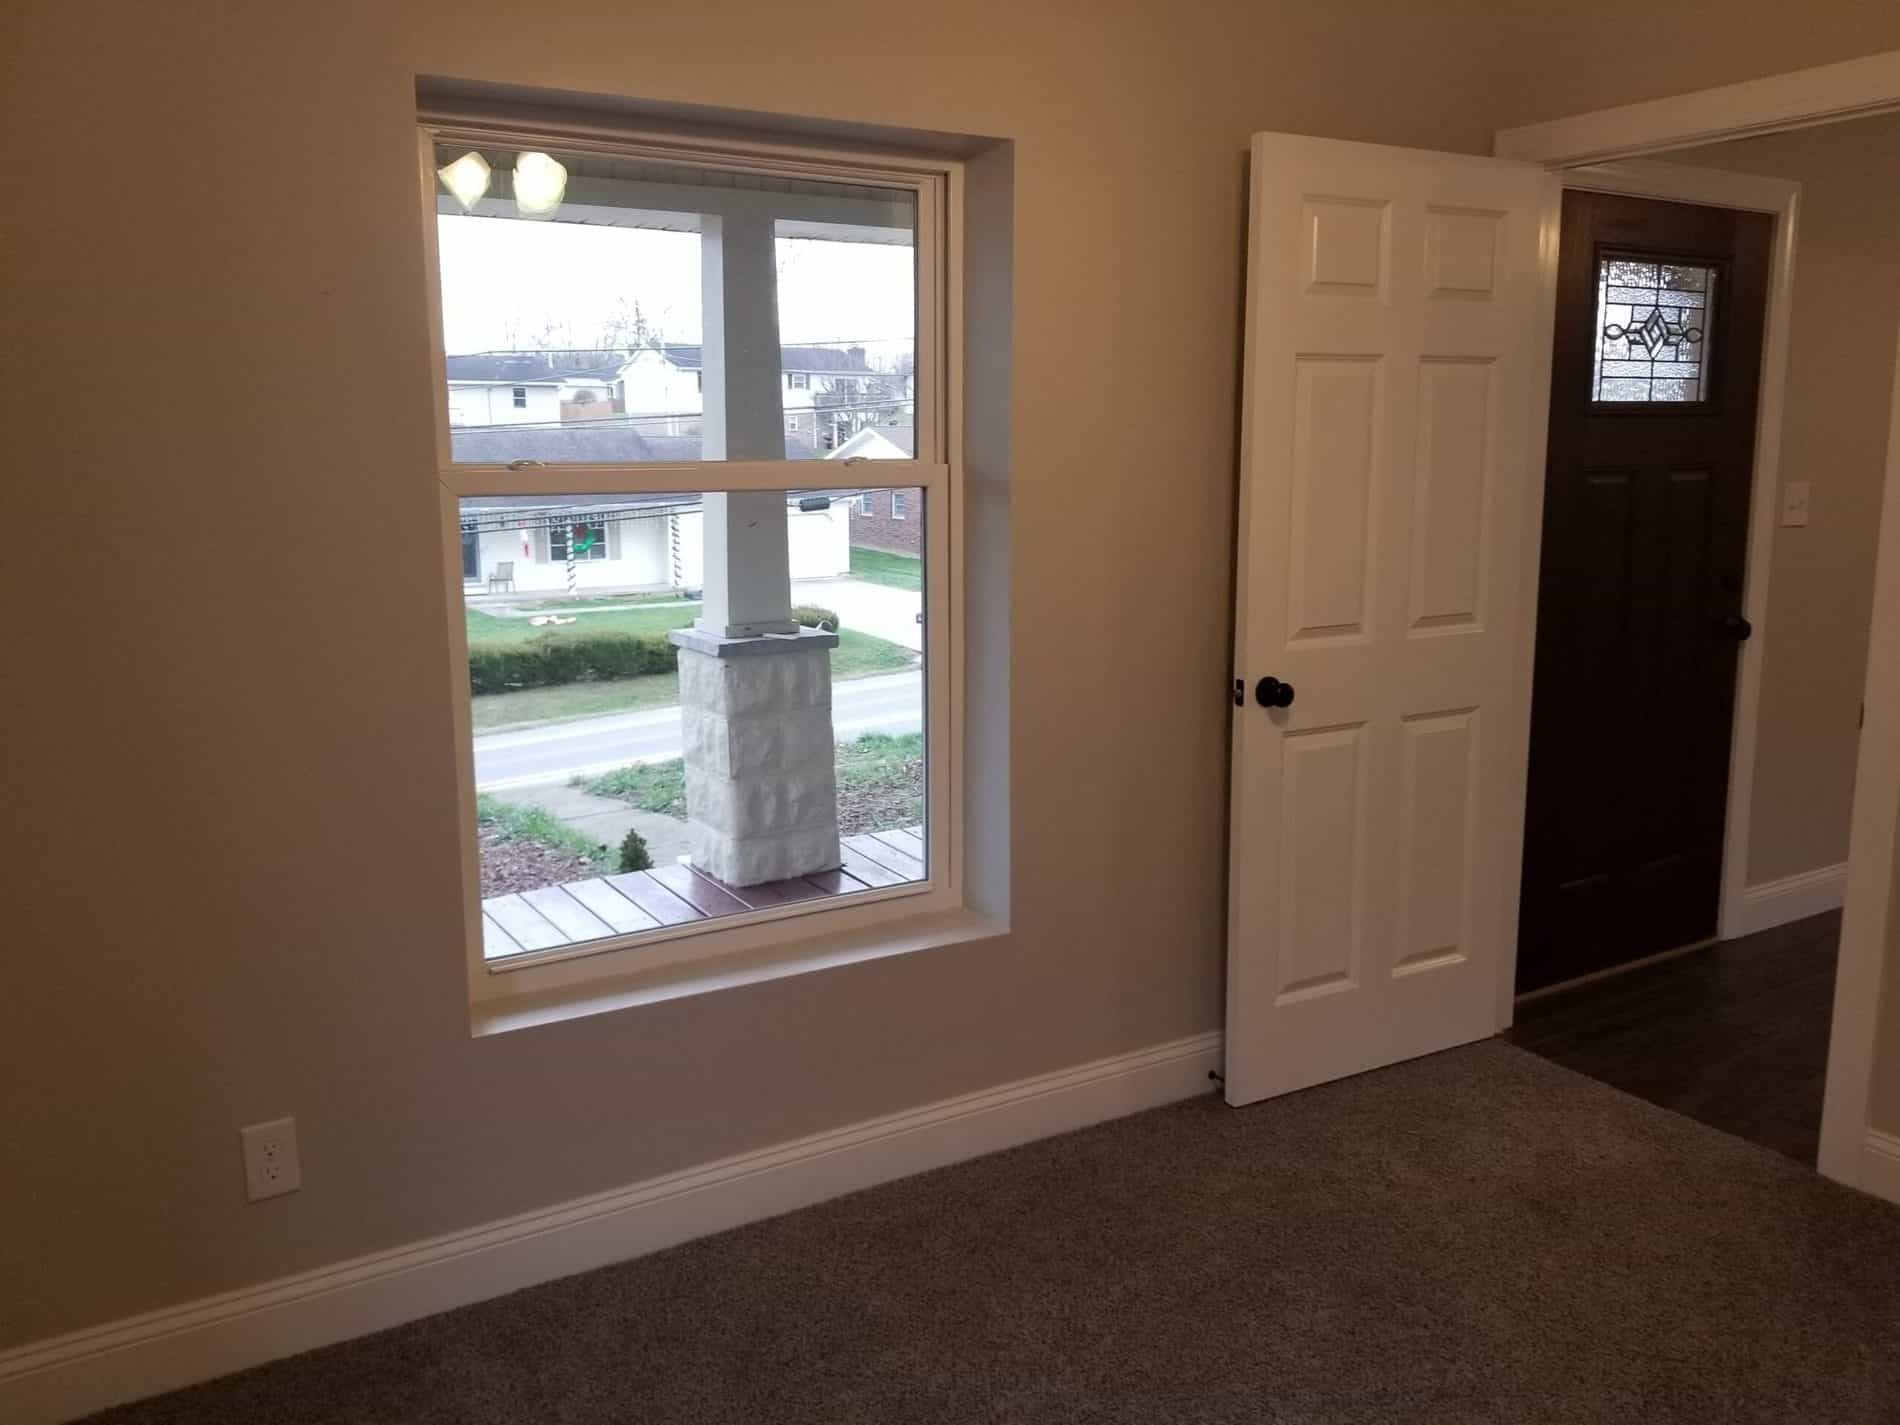 Bedroom Remodeling by Home Remodeler with Front Porch view